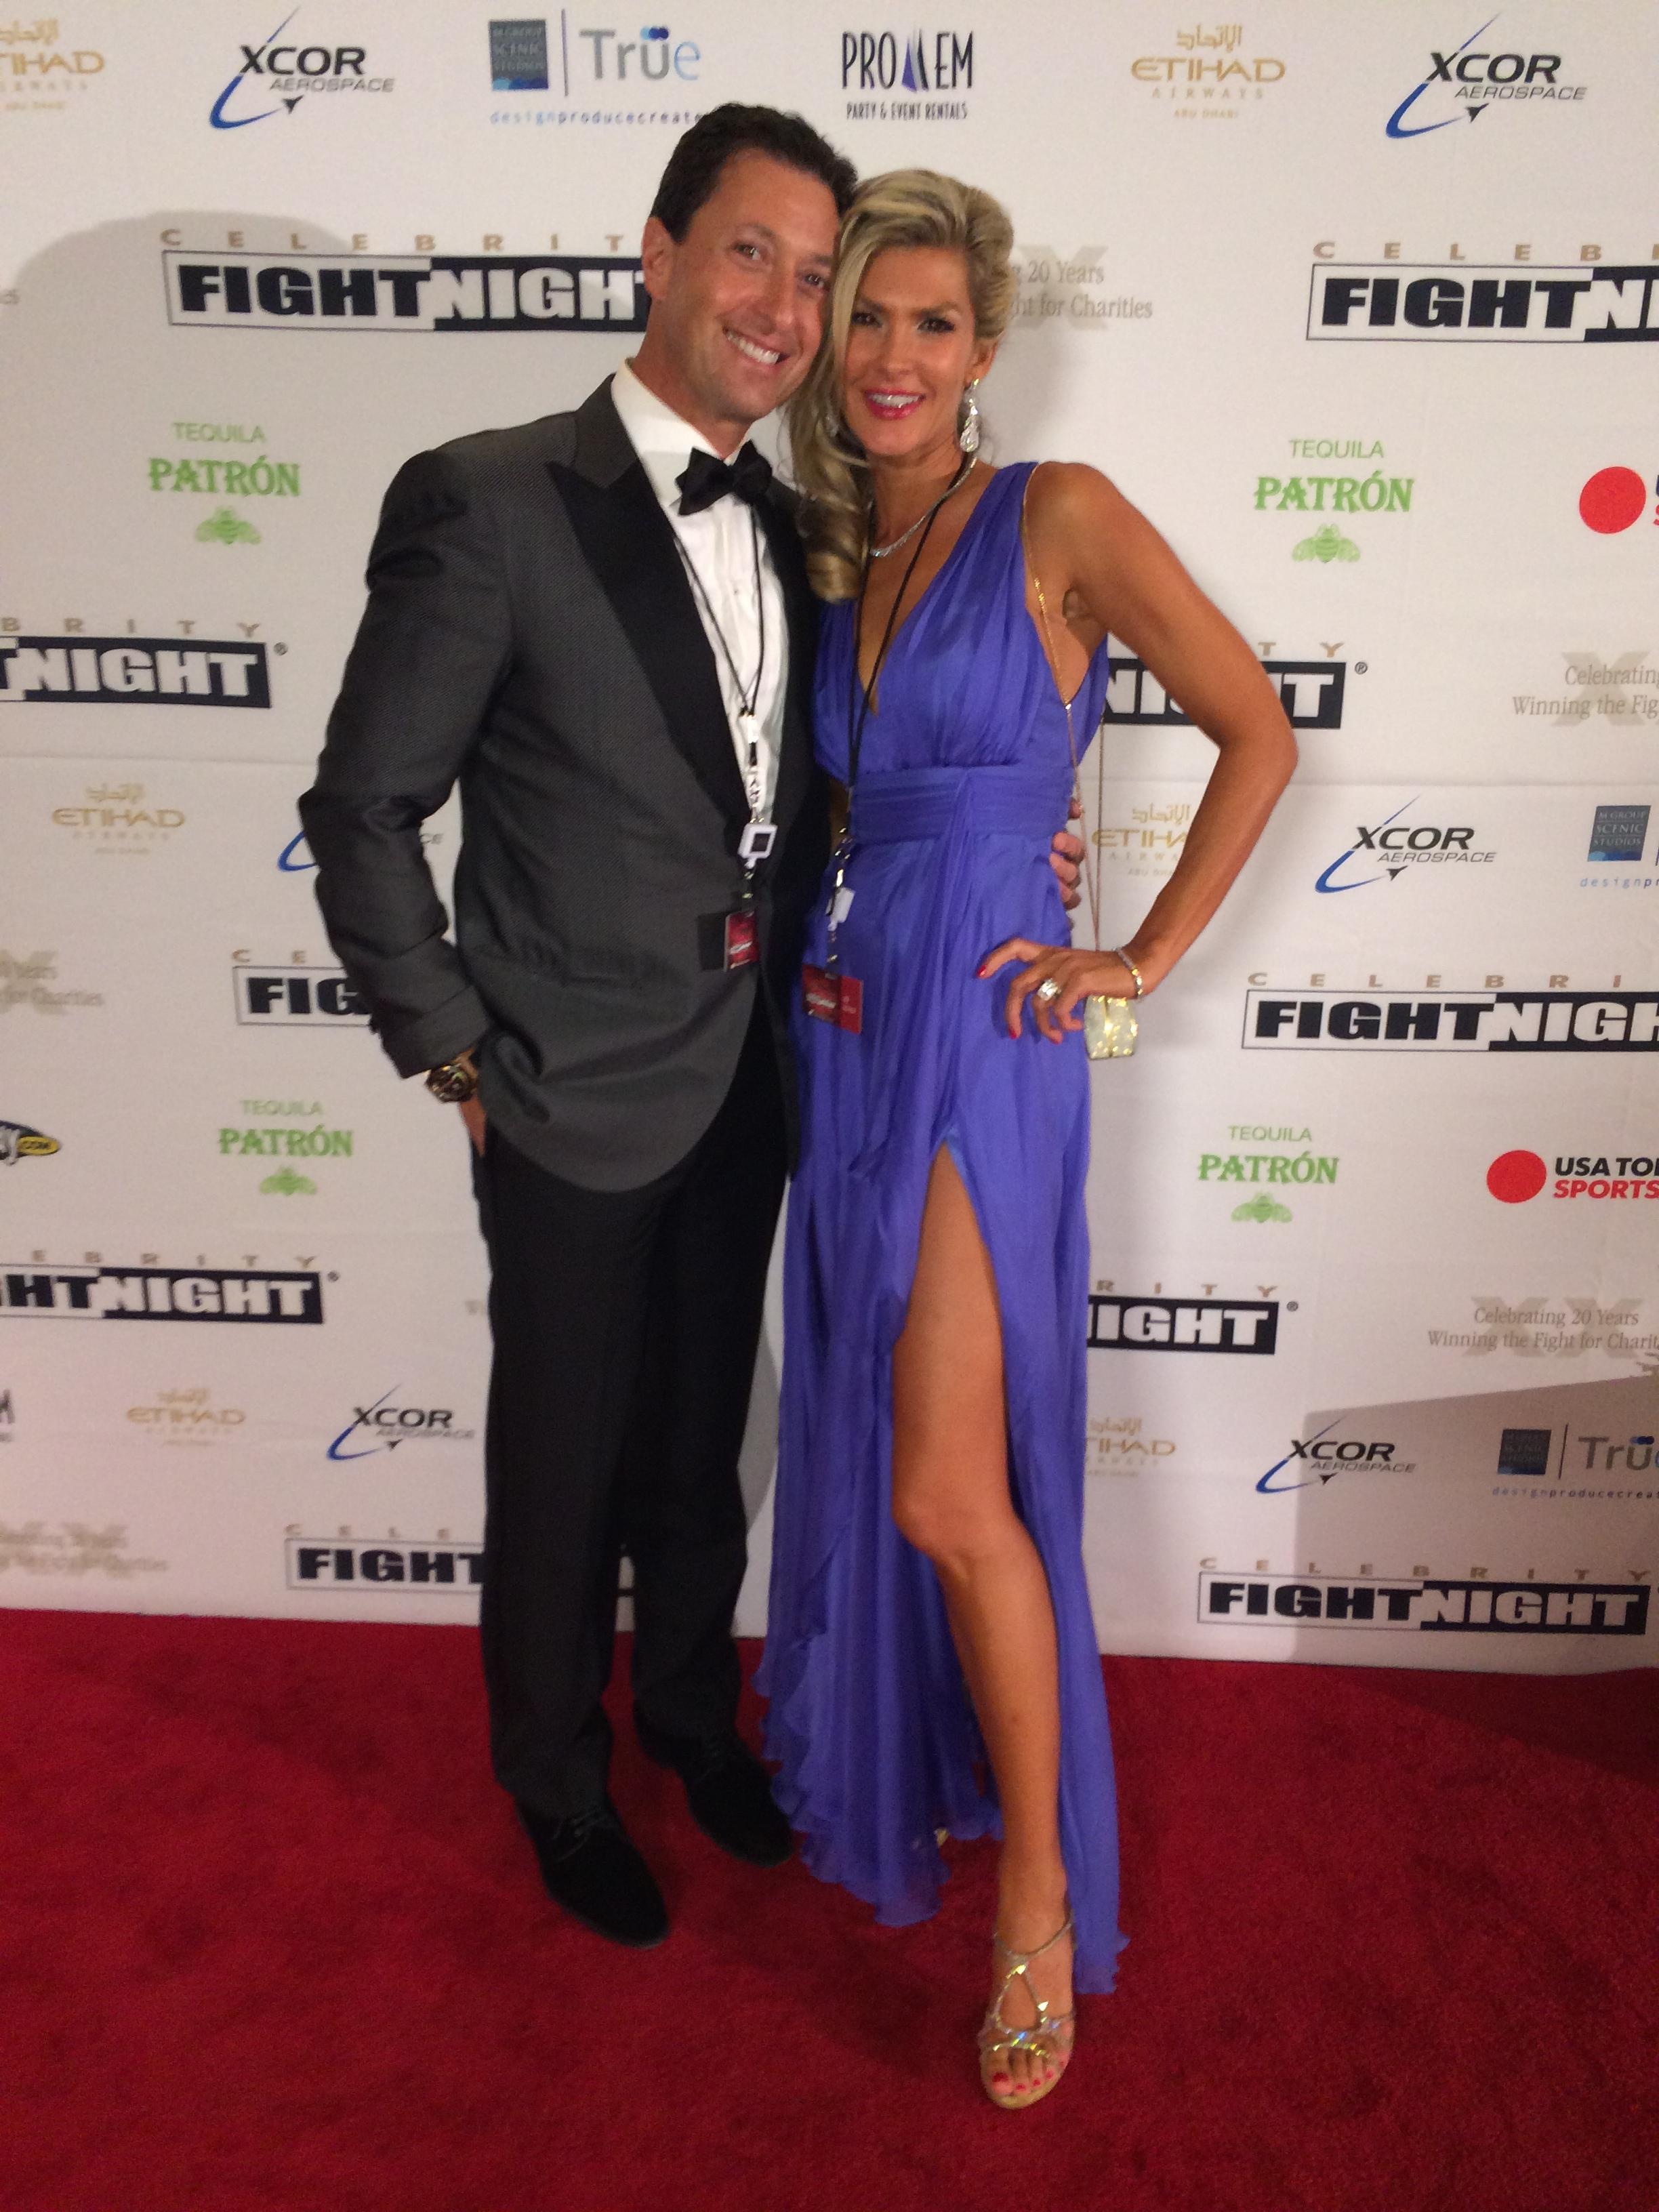 CelebrityFightNight1